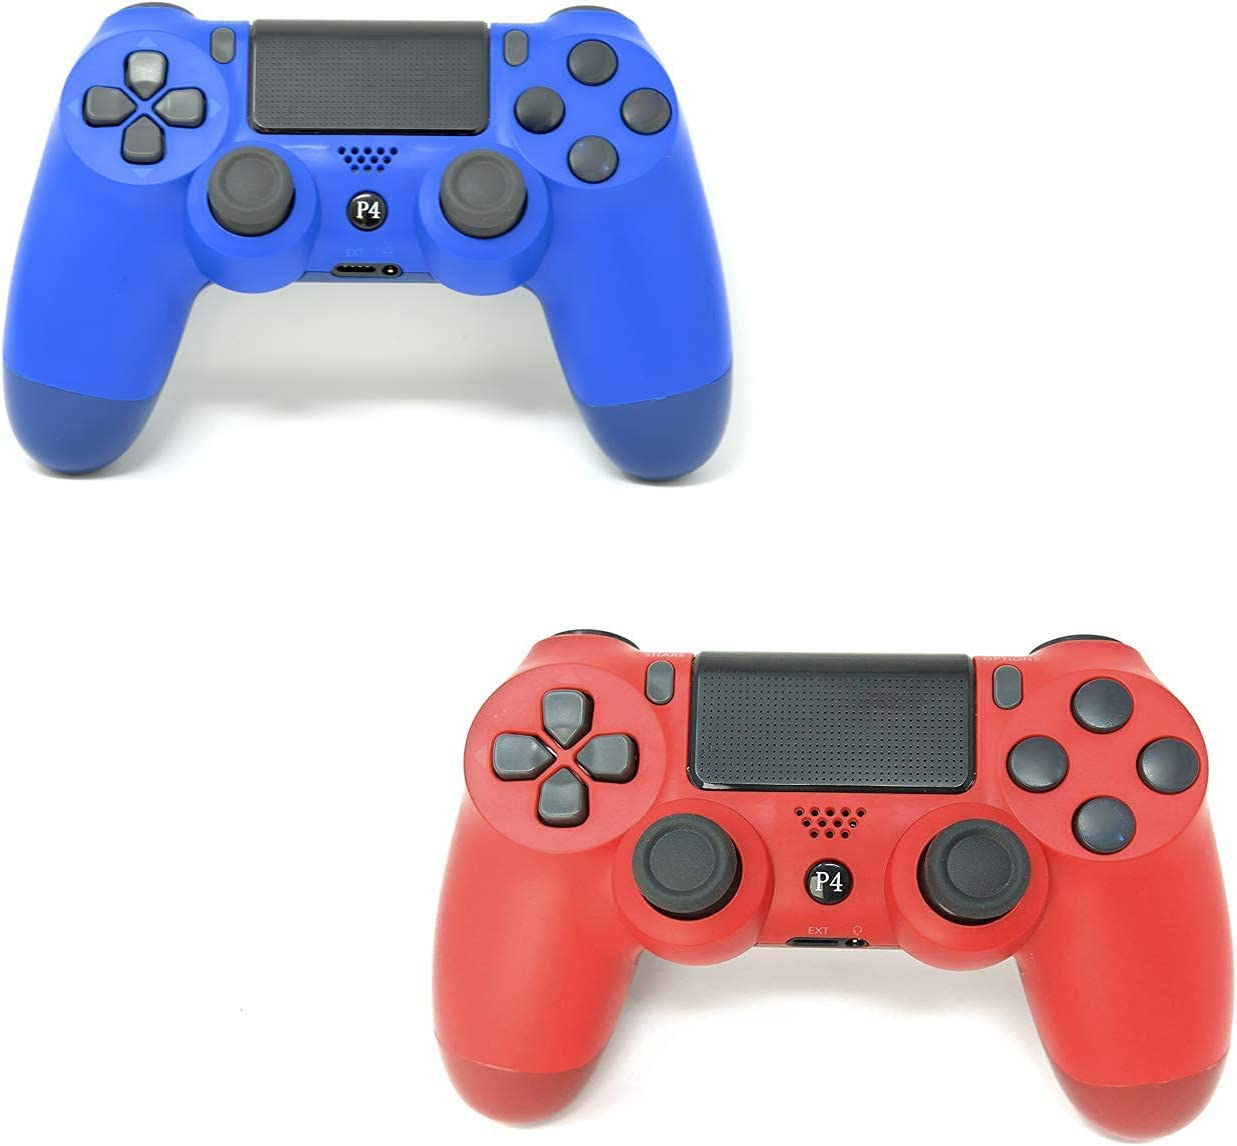 PS4 Controller 25% OFF 2 5 ☆ popular Pack Wireless V2 Cable for with S USB Bluetooth